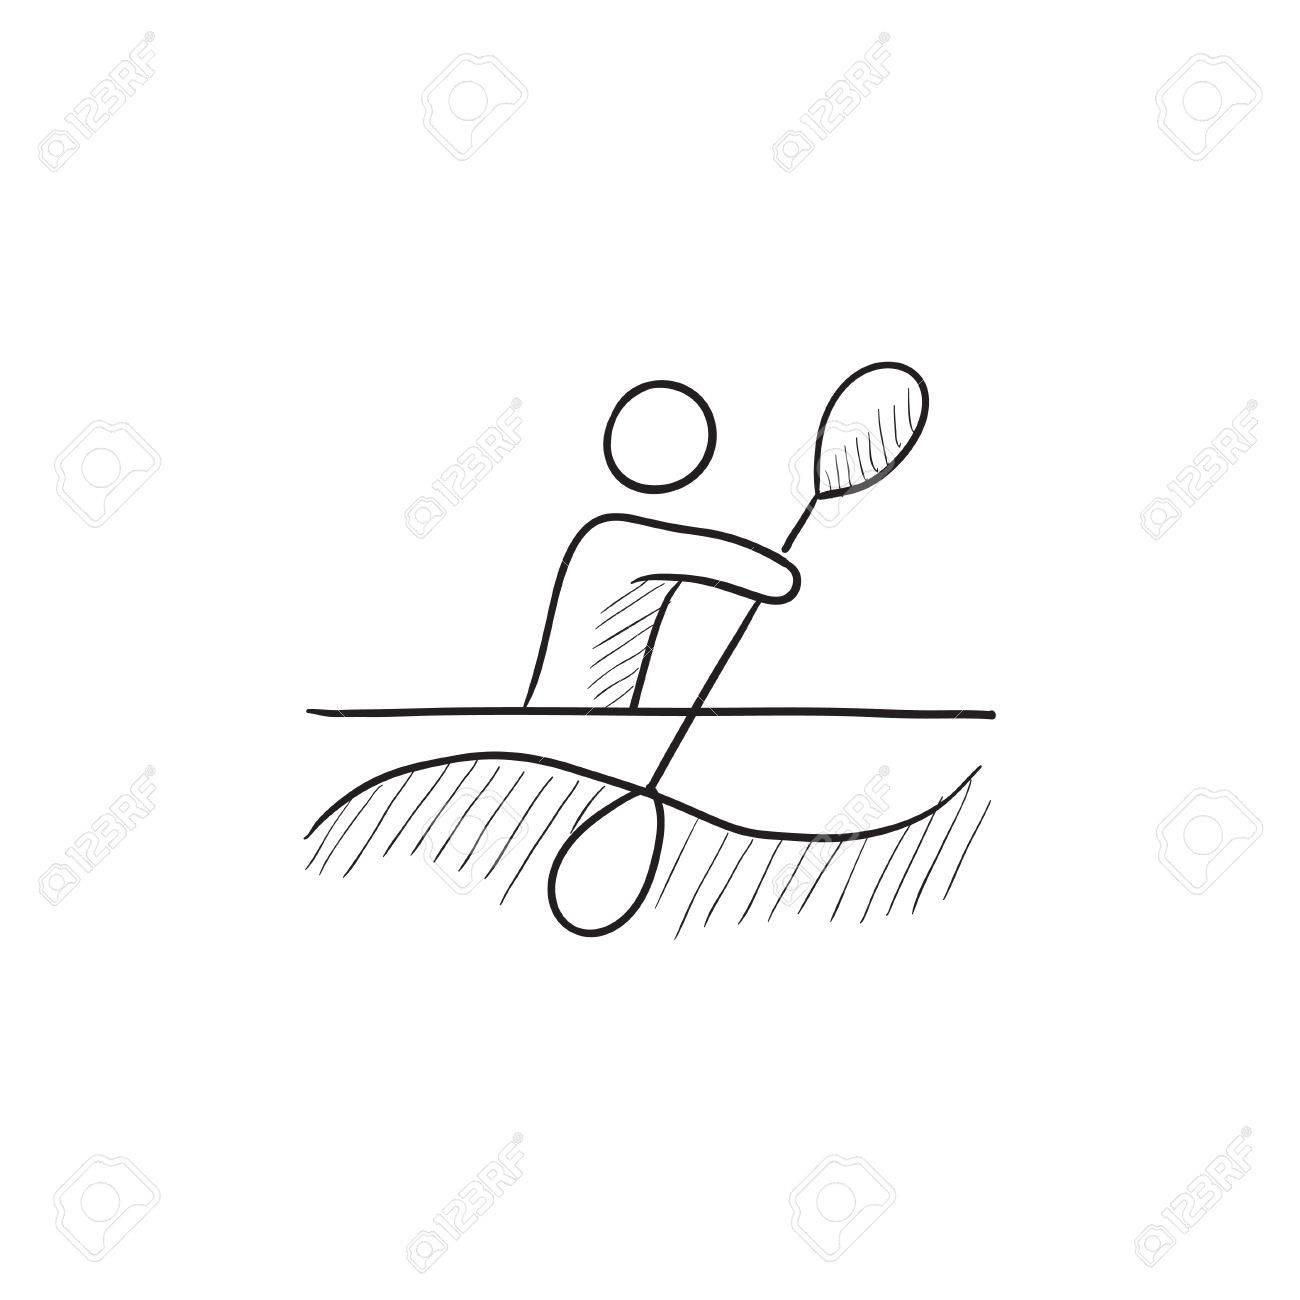 1300x1300 Man Kayaking Vector Sketch Icon Isolated On Background. Hand